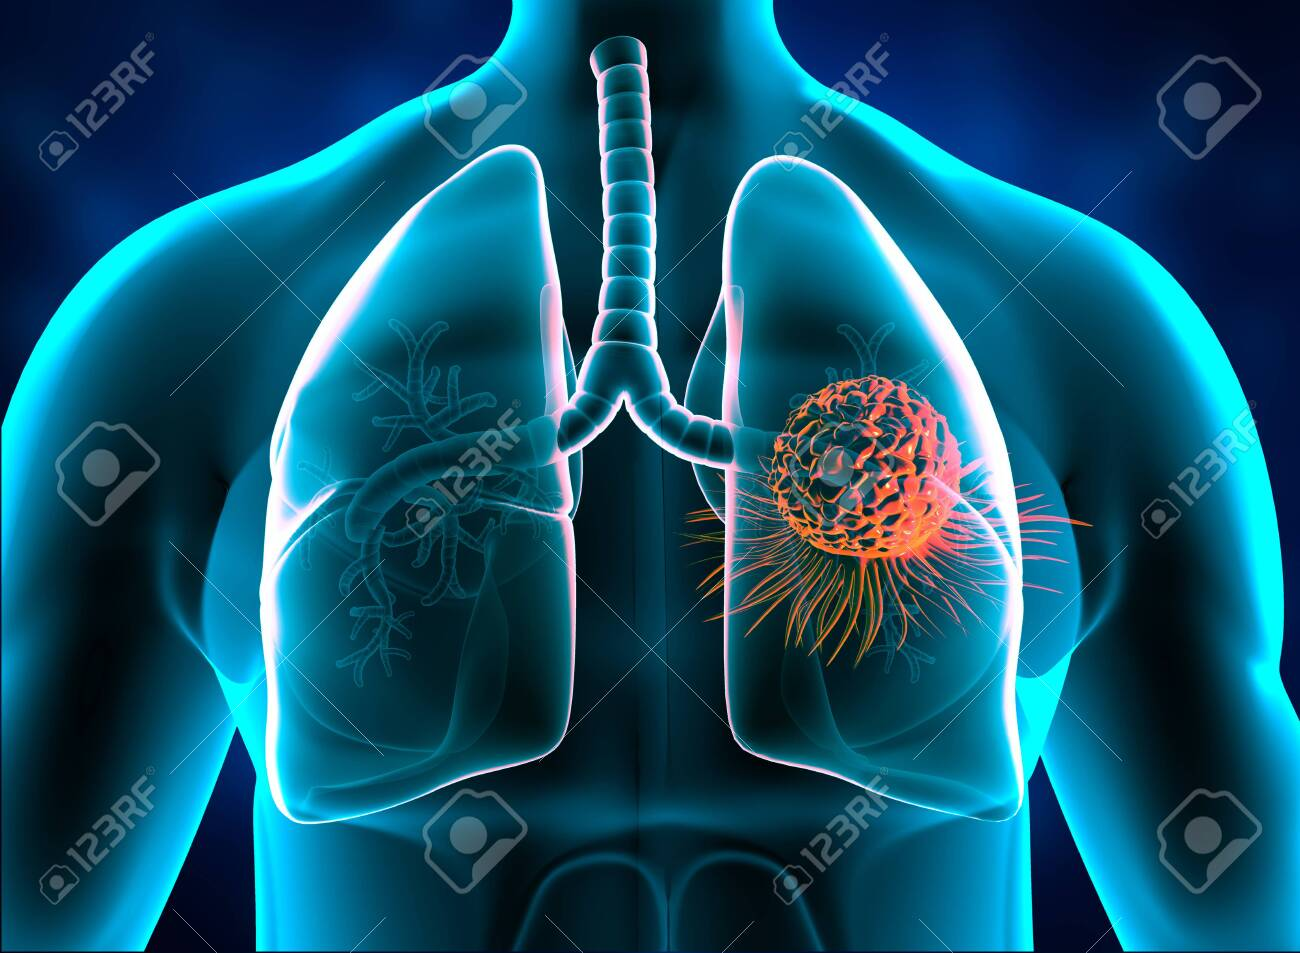 Lungs cancer, tumor in lungs. 3d illustration - 157519045